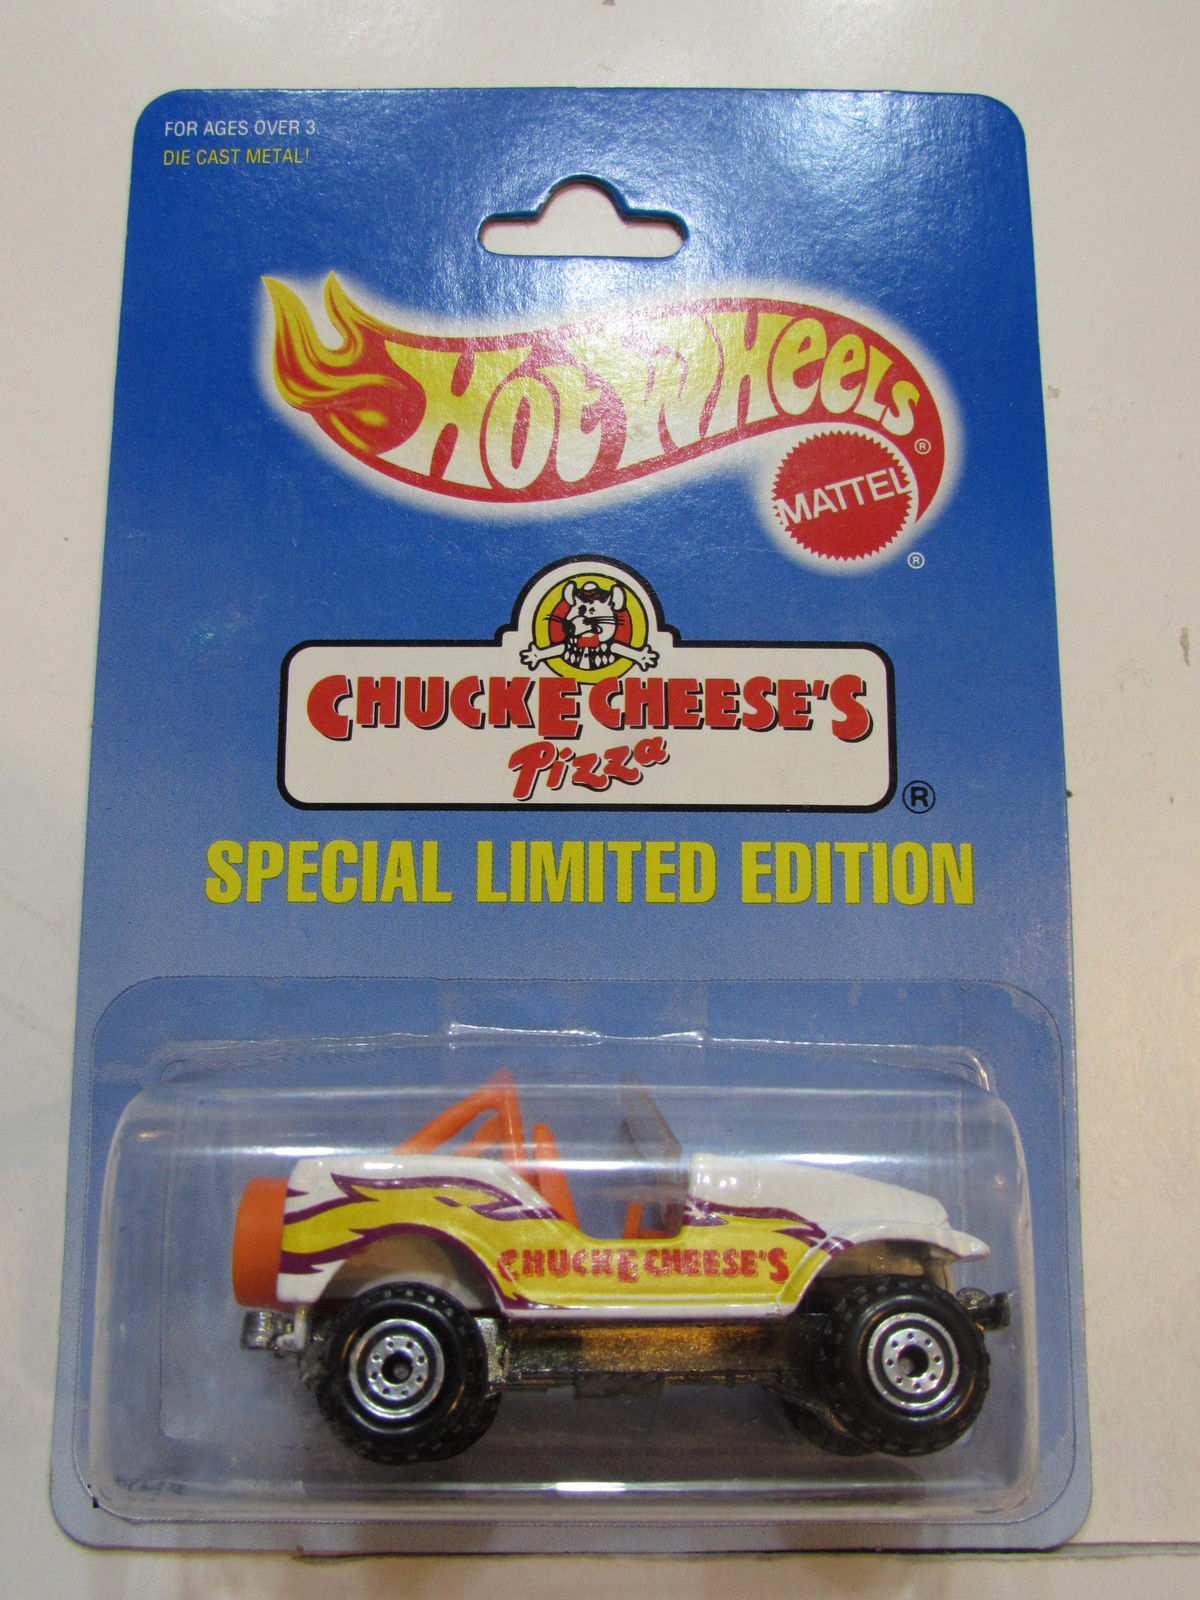 HOT WHEELS 1991 CHUCKE CHEESE'S SPECIAL LIMITED EDITION JEEP